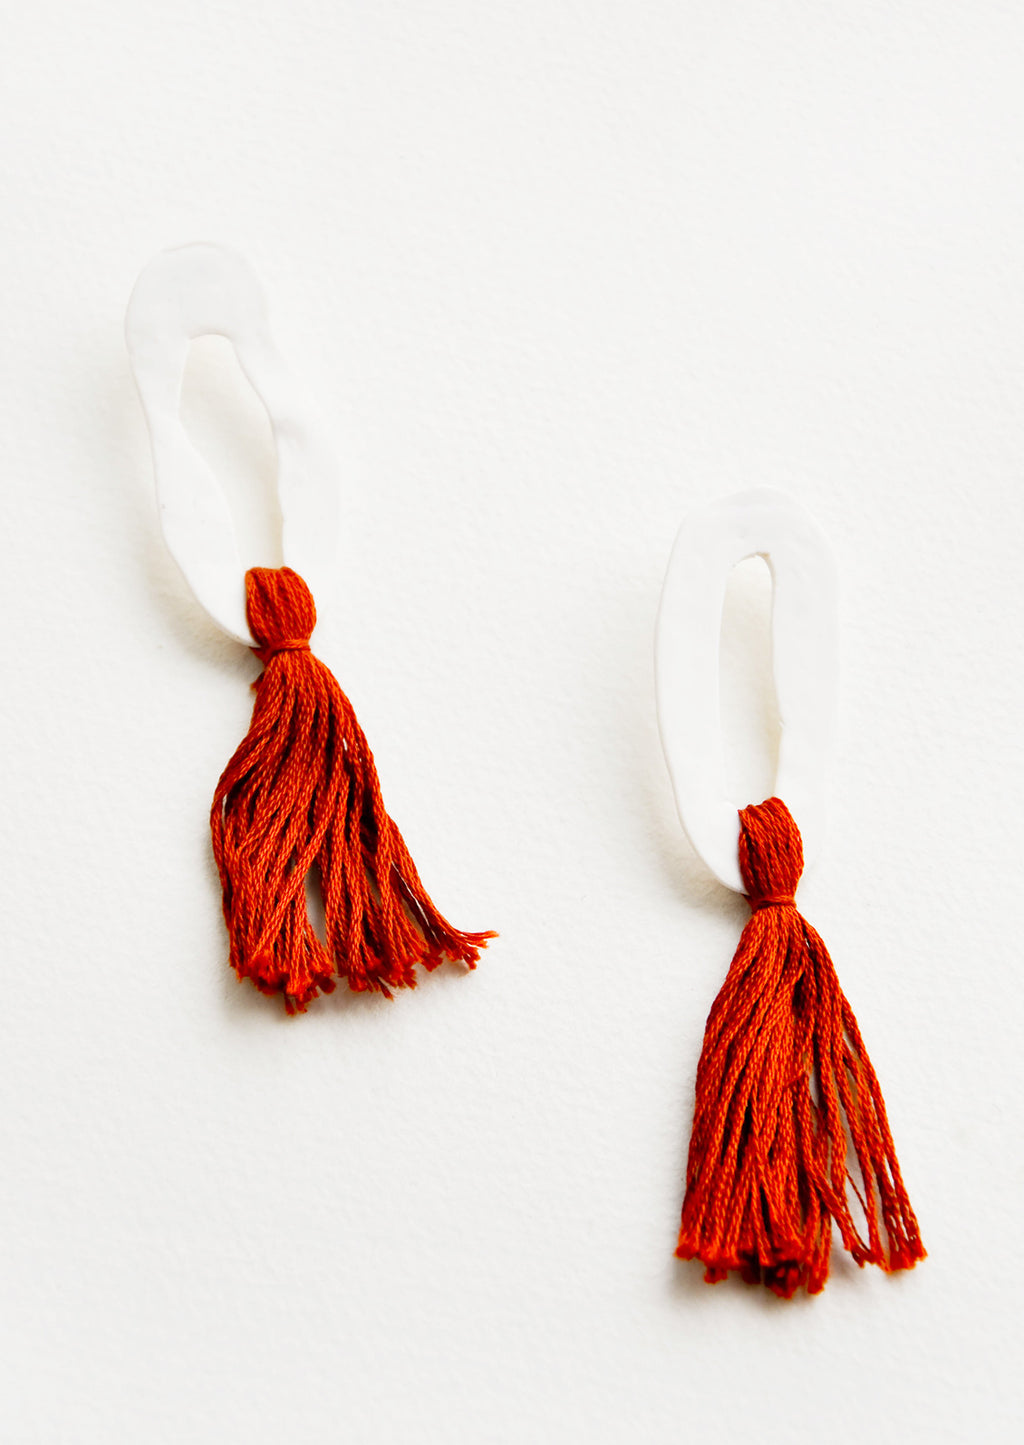 Rust: Open white oval earrings with red fringe.